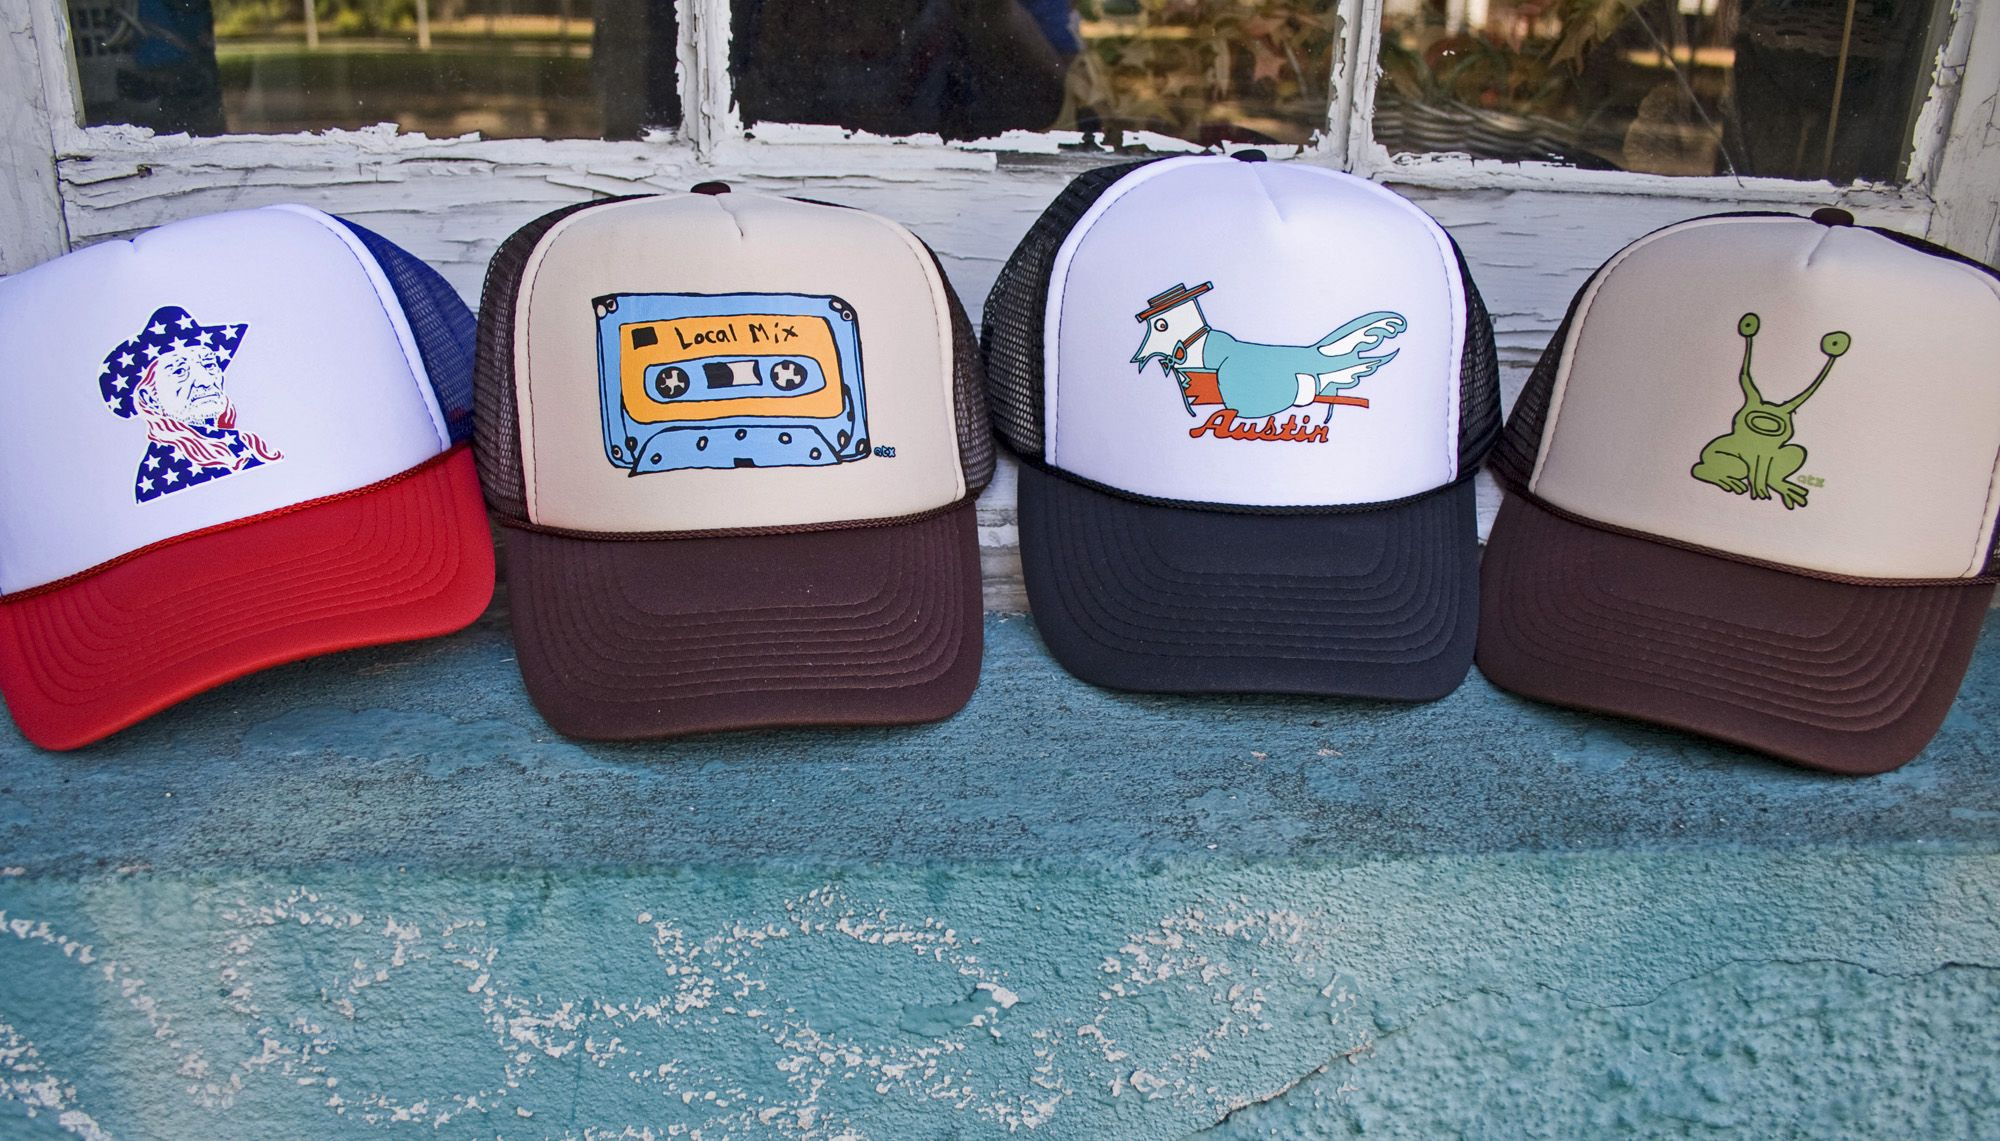 We just got in the coolest trucker hats ever!!